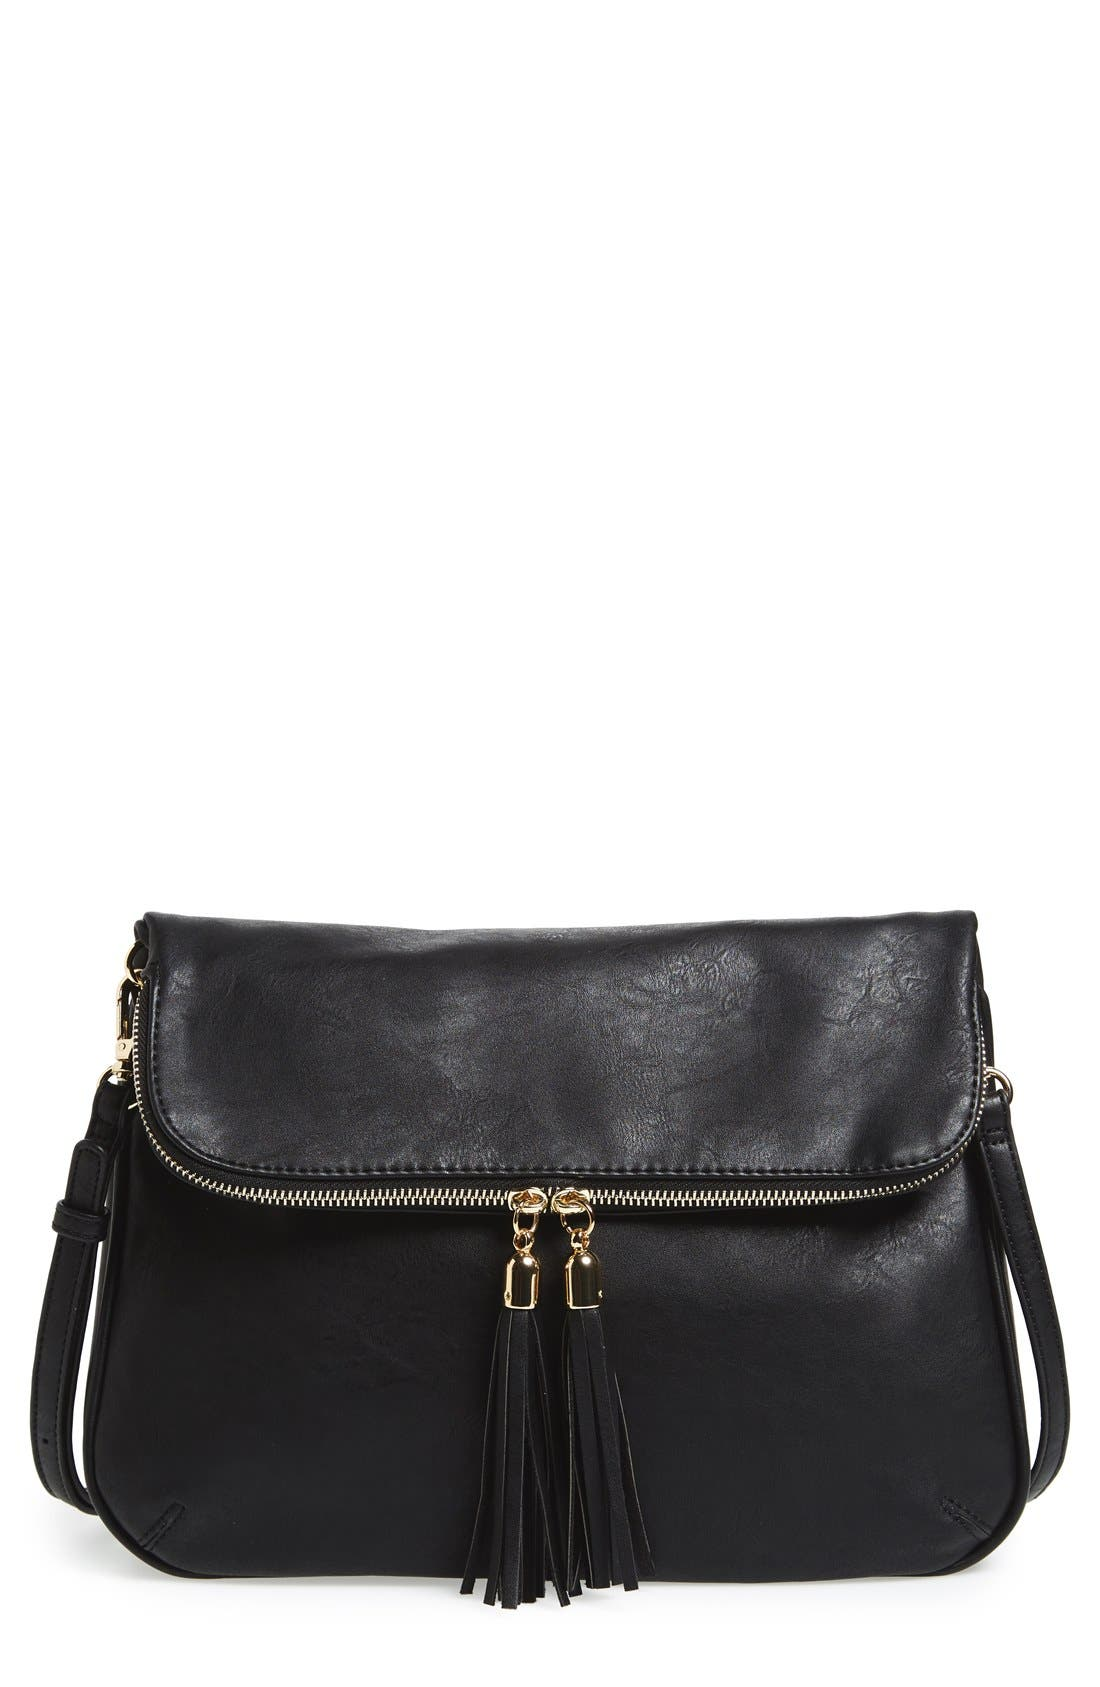 Main Image - BP. Foldover Crossbody Bag